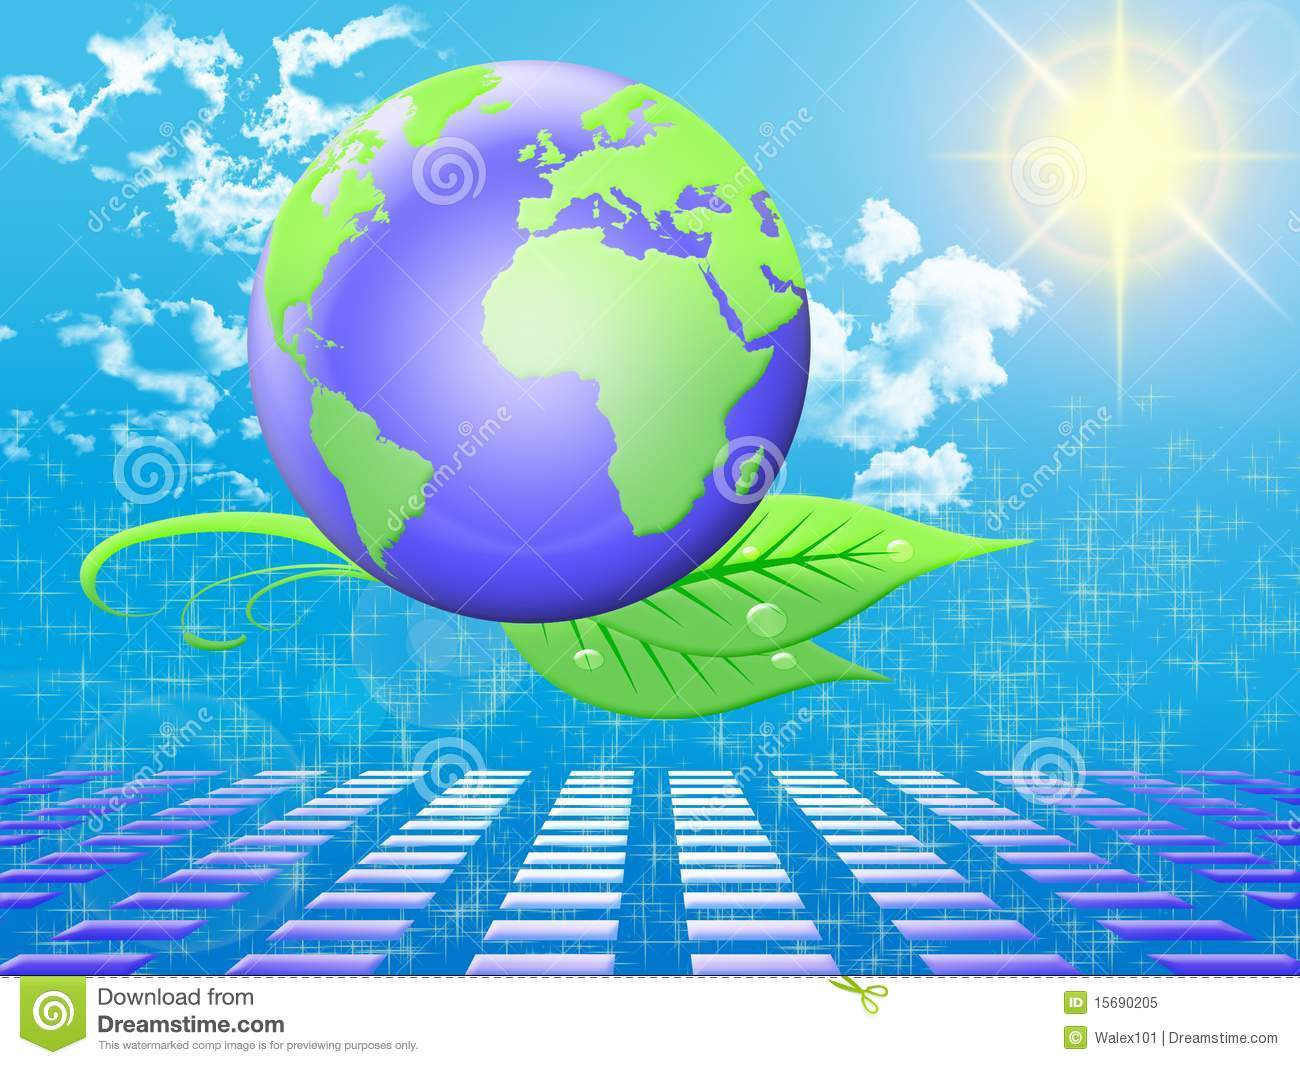 Clean Energy Royalty Free Stock Photo - Image: 15690205